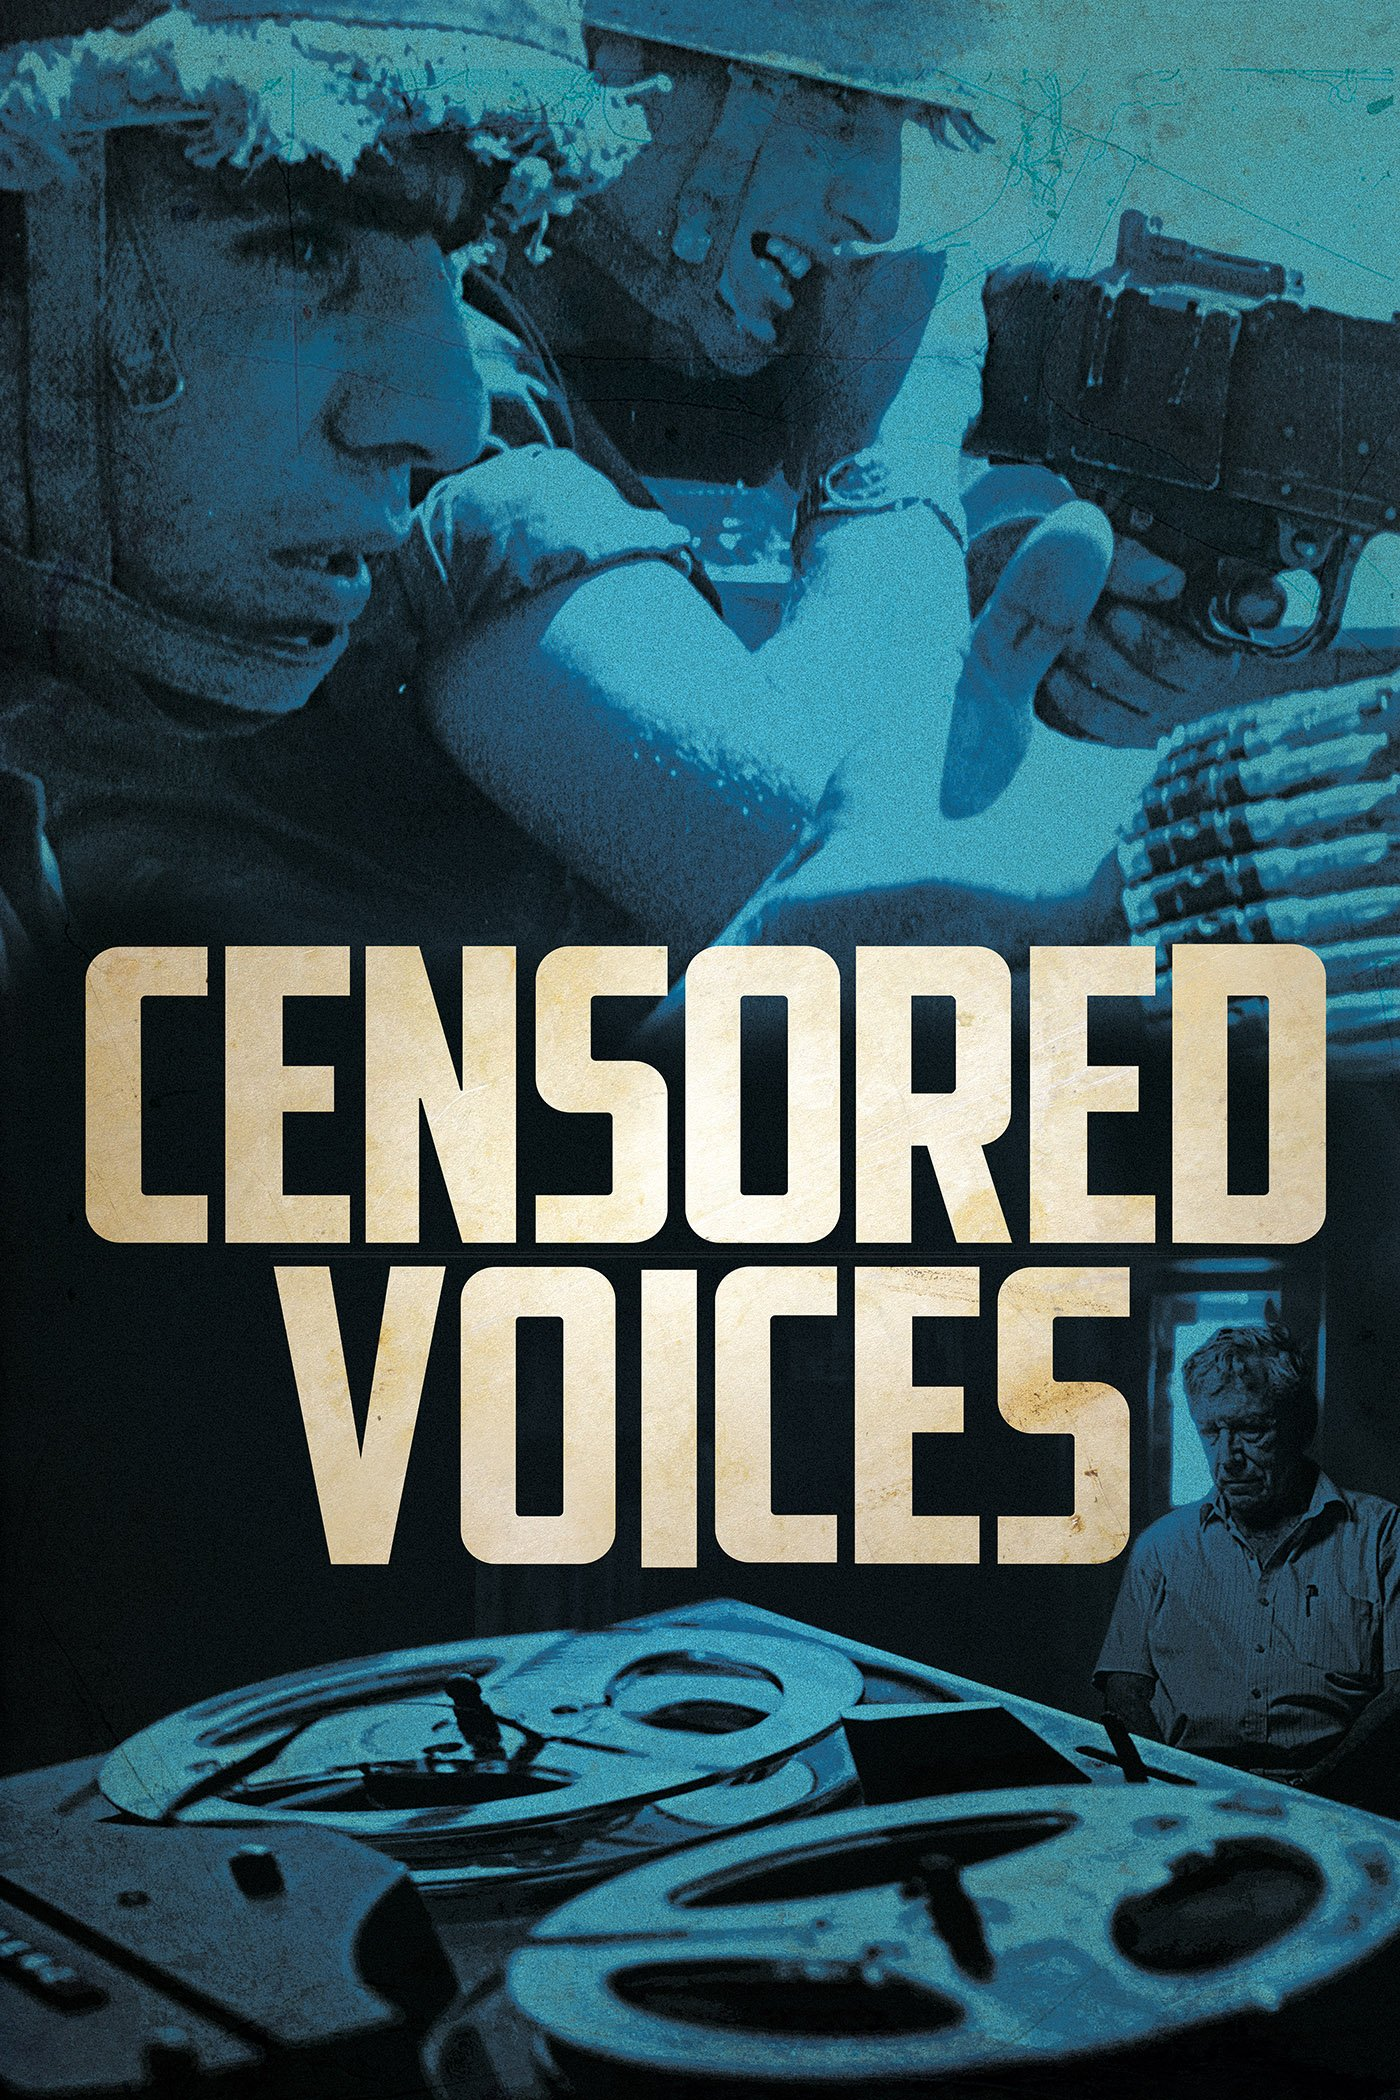 DVD : Censored Voices (Subtitled)